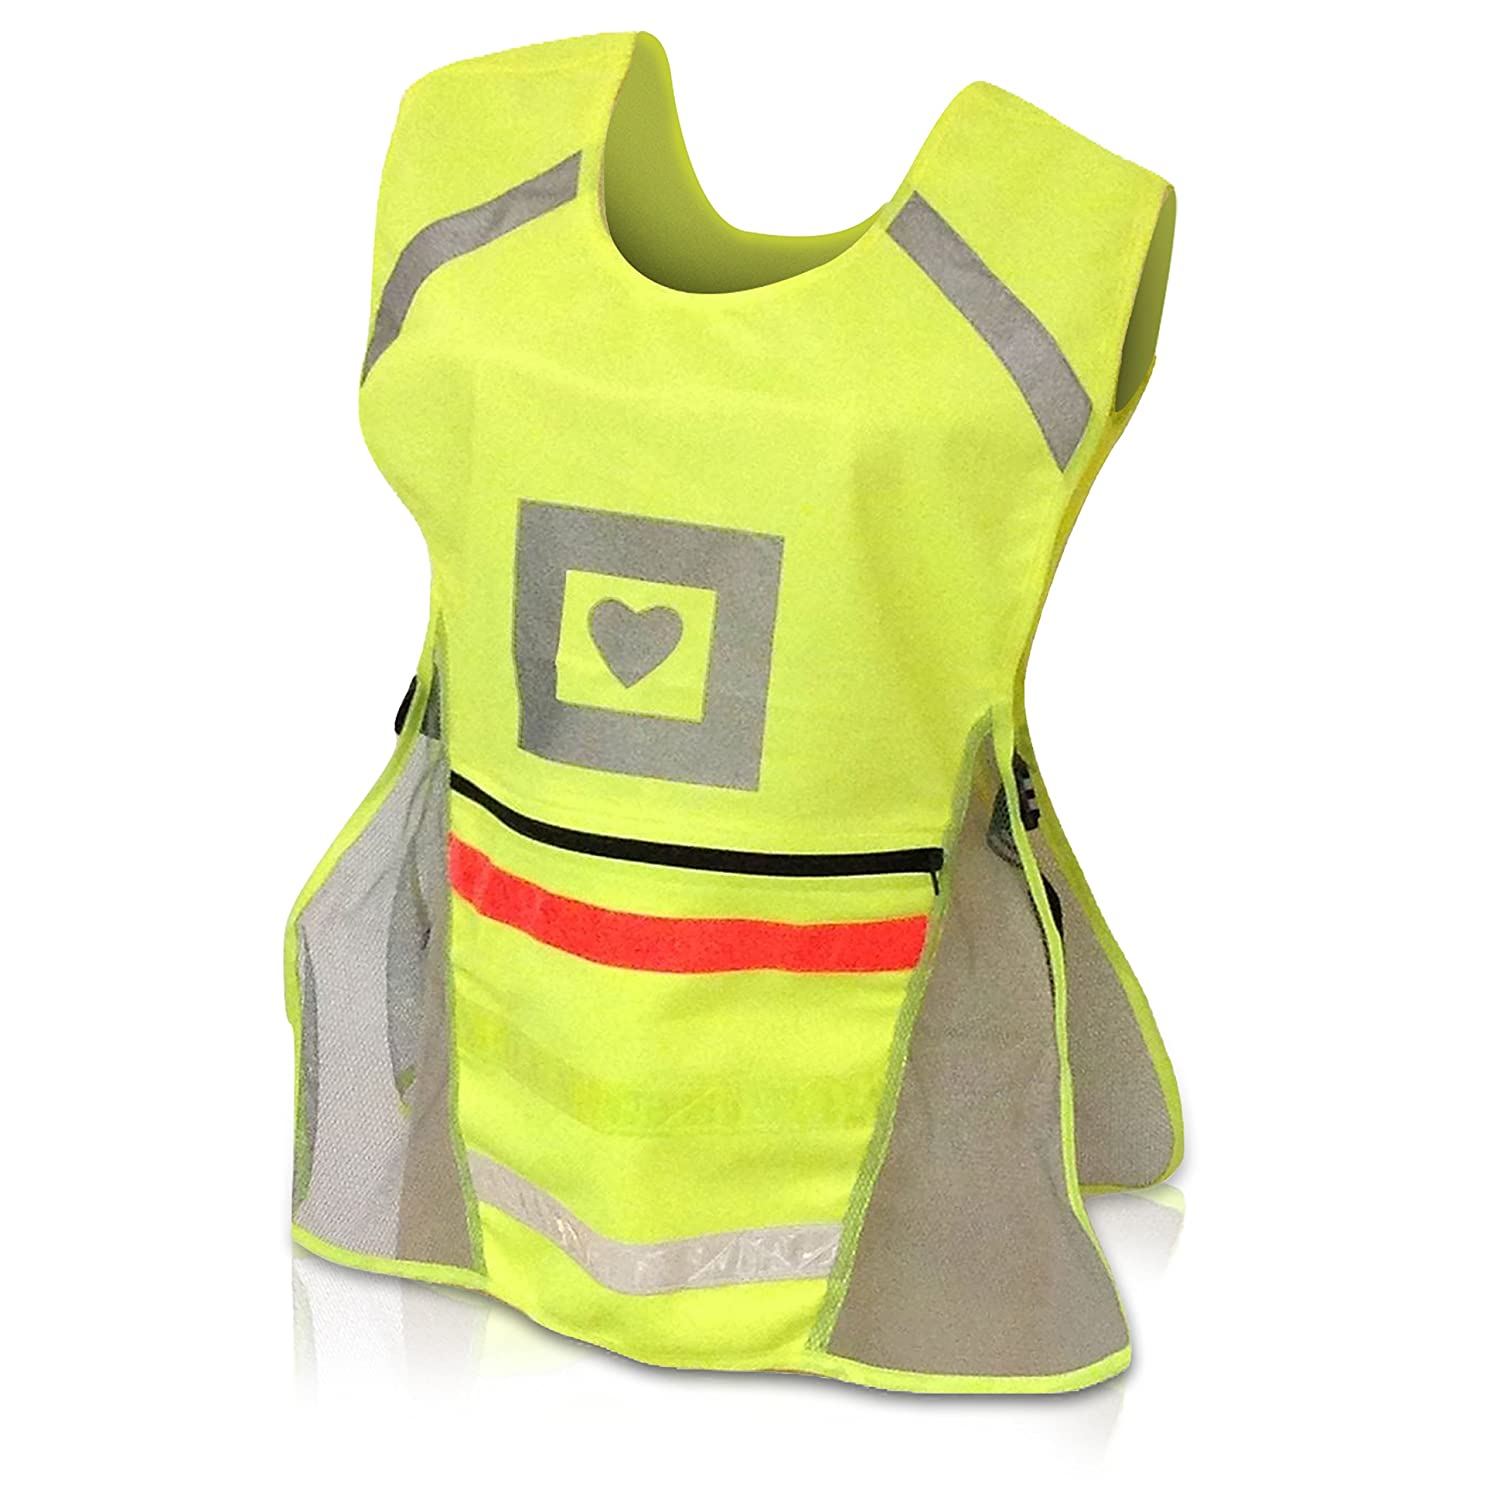 best new high visibility reflective safety vest by glow portal run bike or wal ebay. Black Bedroom Furniture Sets. Home Design Ideas